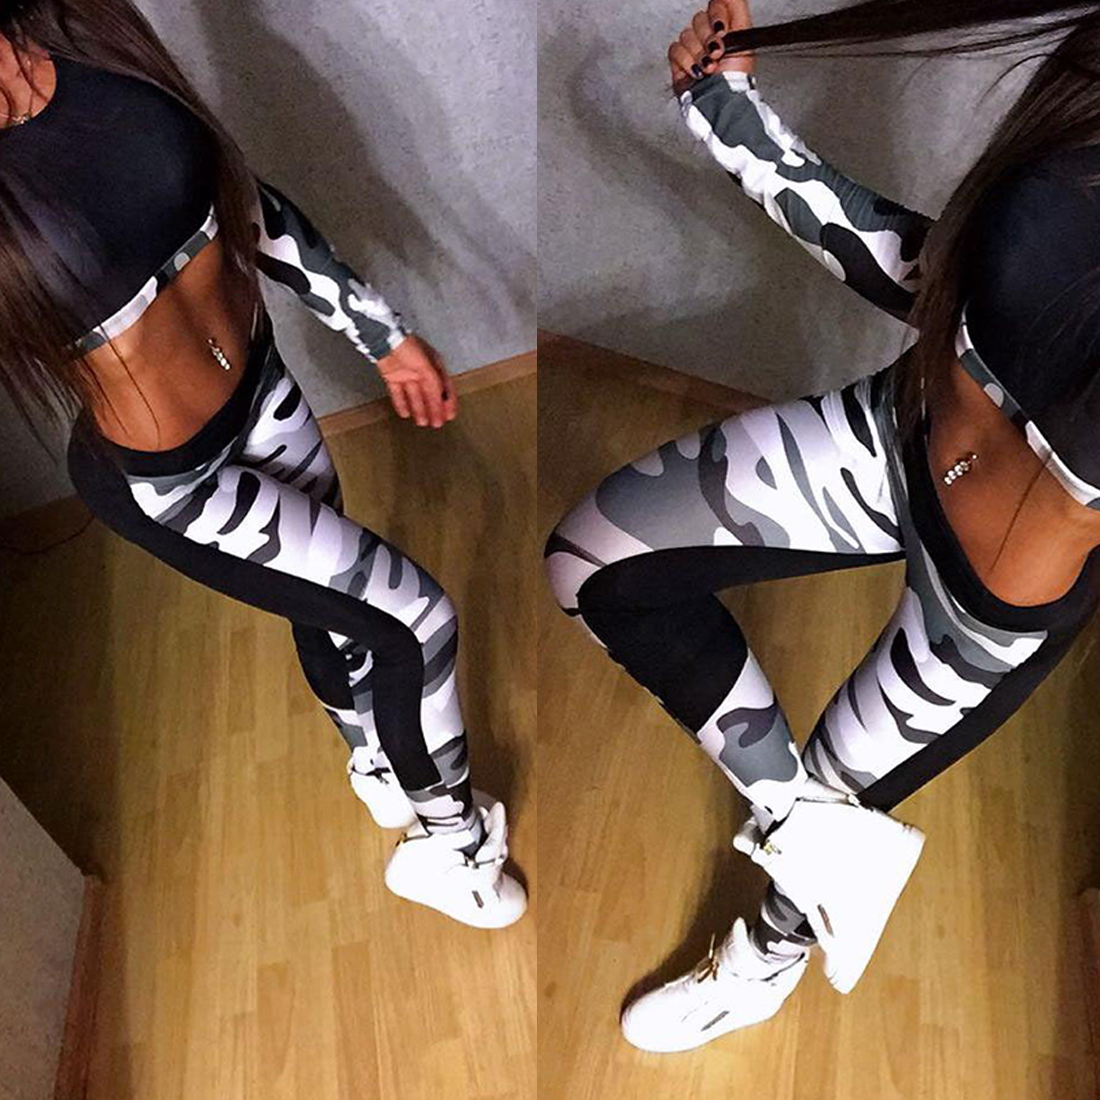 Good Selling  Women Summer Sexy Fashion  Fitness Crop Top+ Pants Leggings Workout  Wear Set